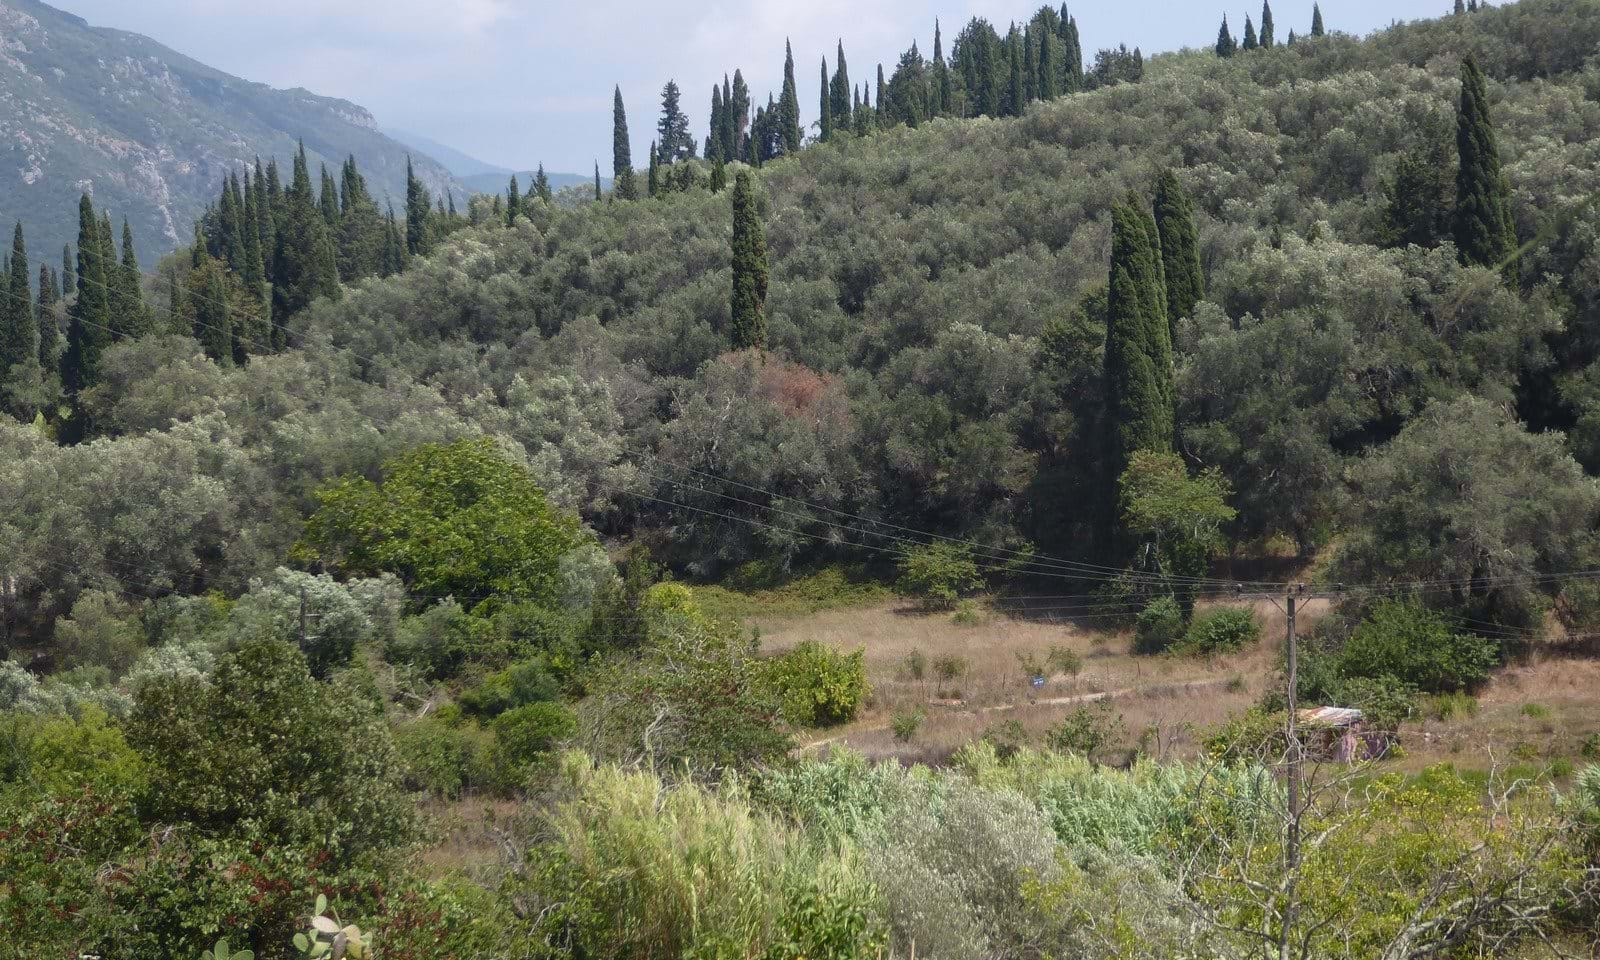 Doukades property for sale in Corfu